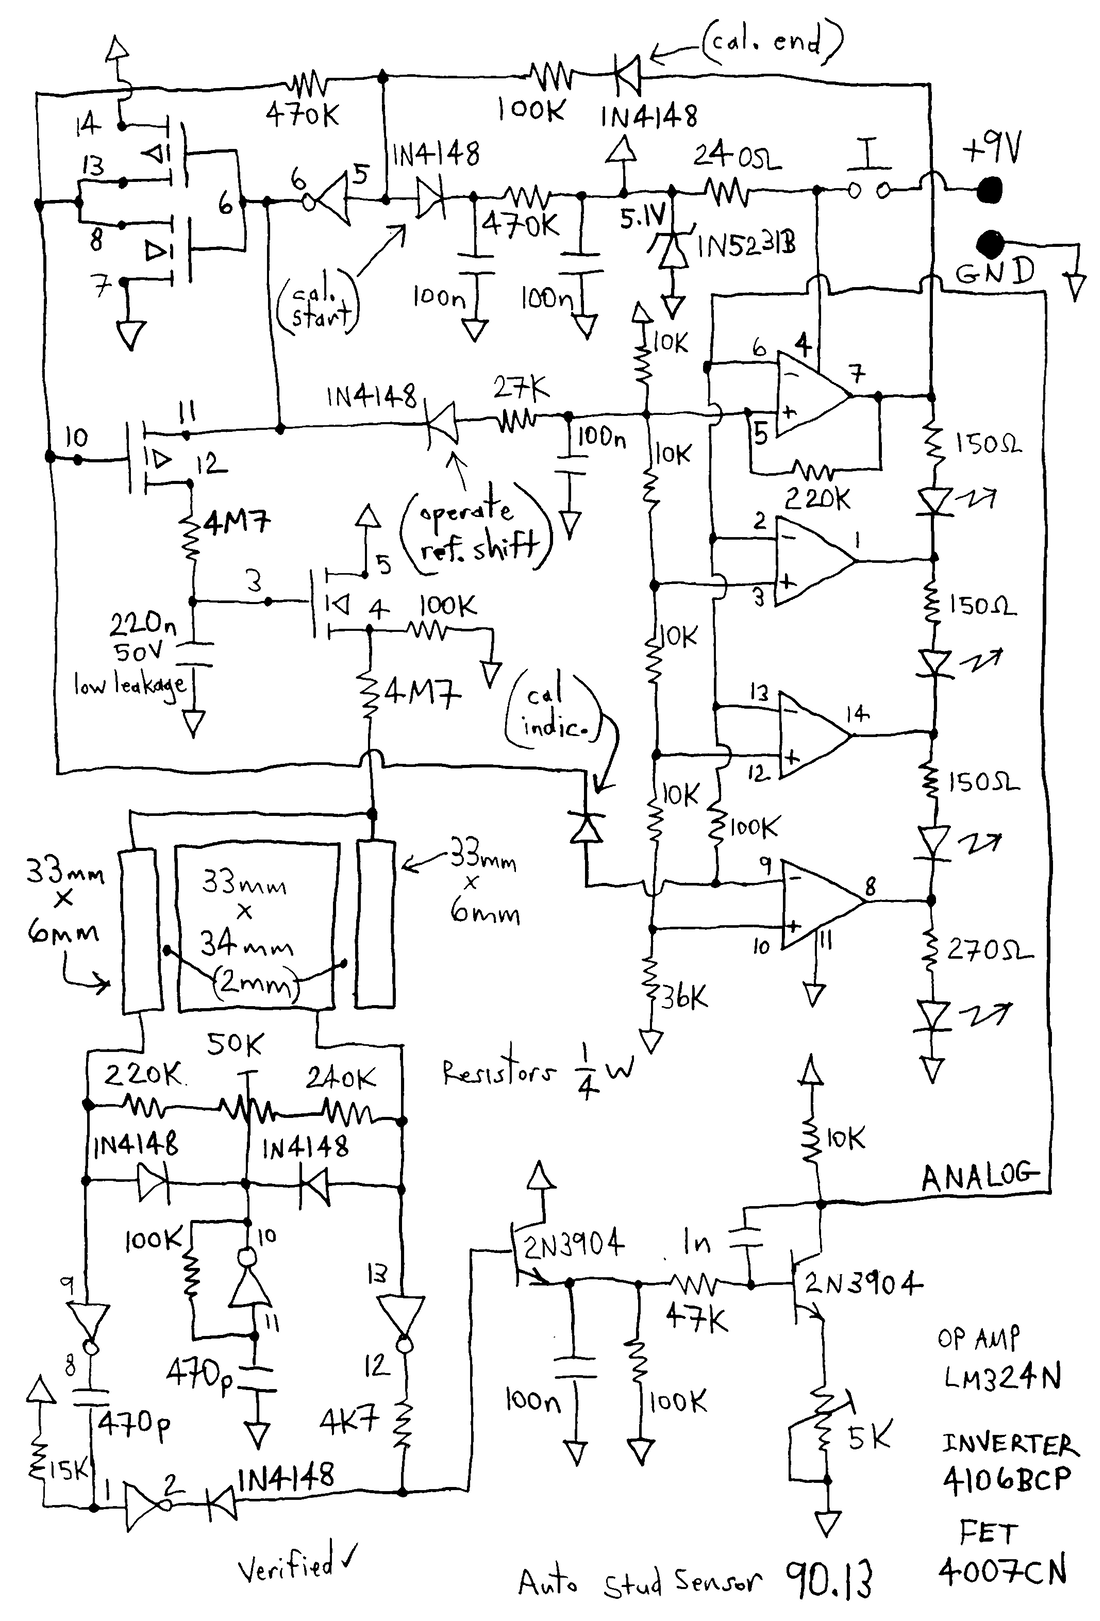 Electric Circuit Drawing At Free For Personal Use Main Schematics 1100x1621 Lpg Sensor Alarm Sgprojects Co In Schematic Wiring